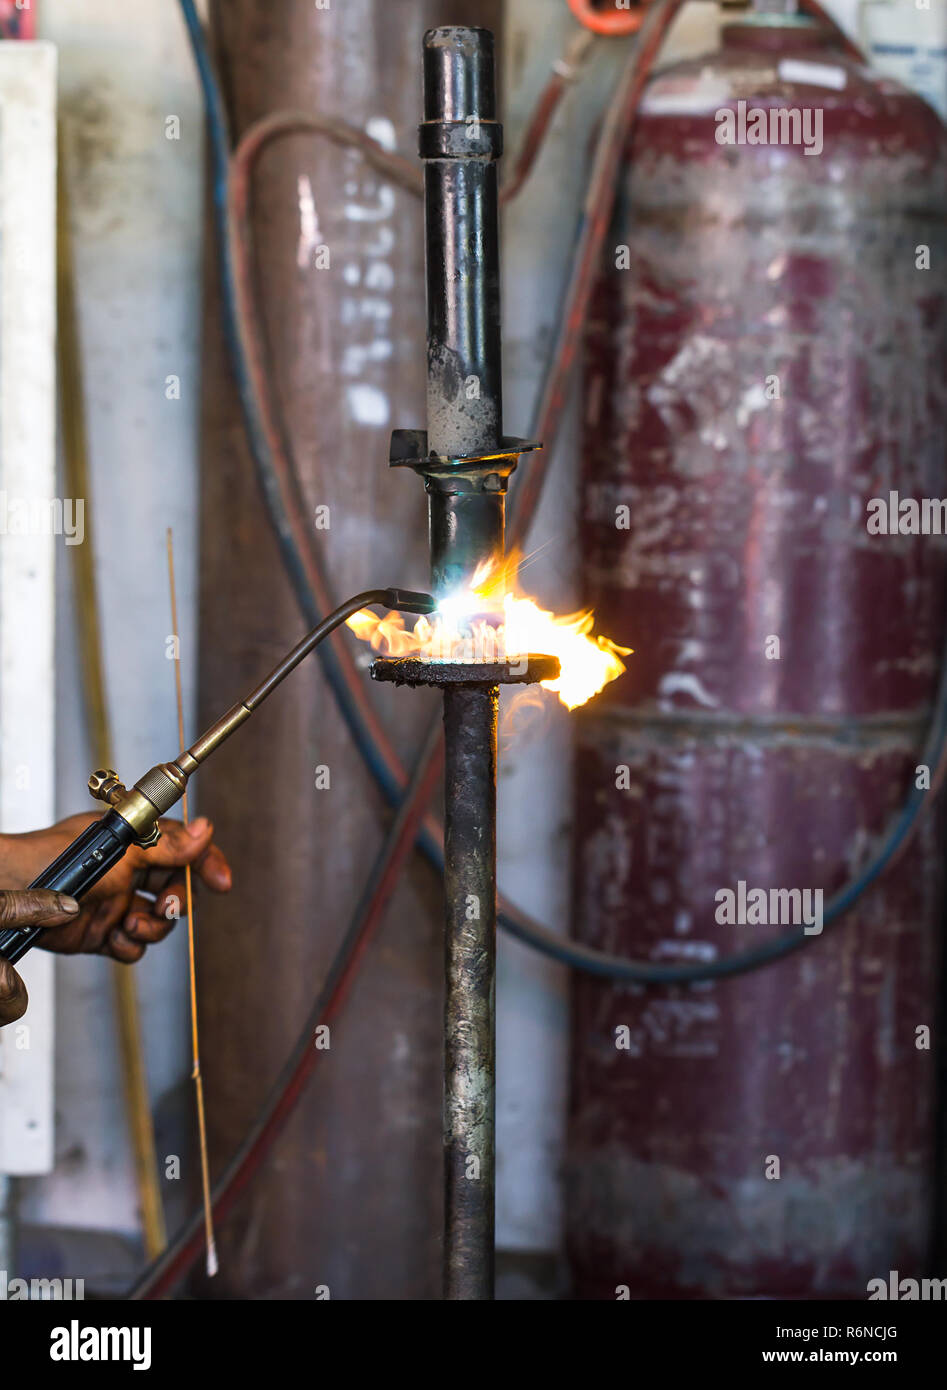 Welders were repairing cutting Shock absorbers - Stock Image